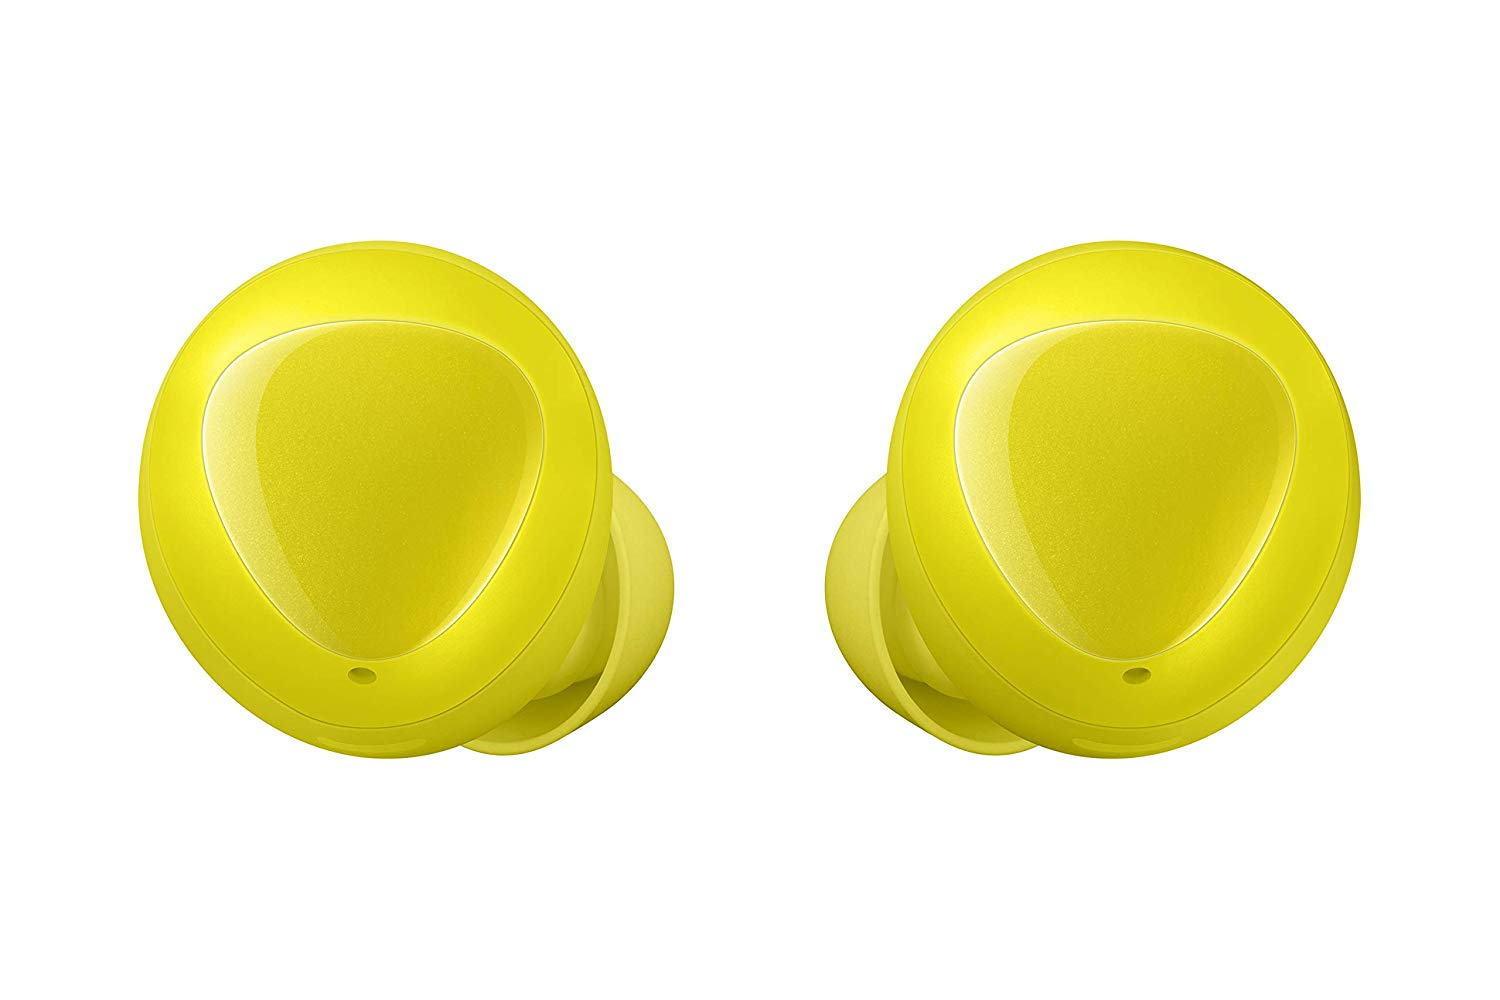 Samsung Galaxy Buds with Charging Case - Yellow